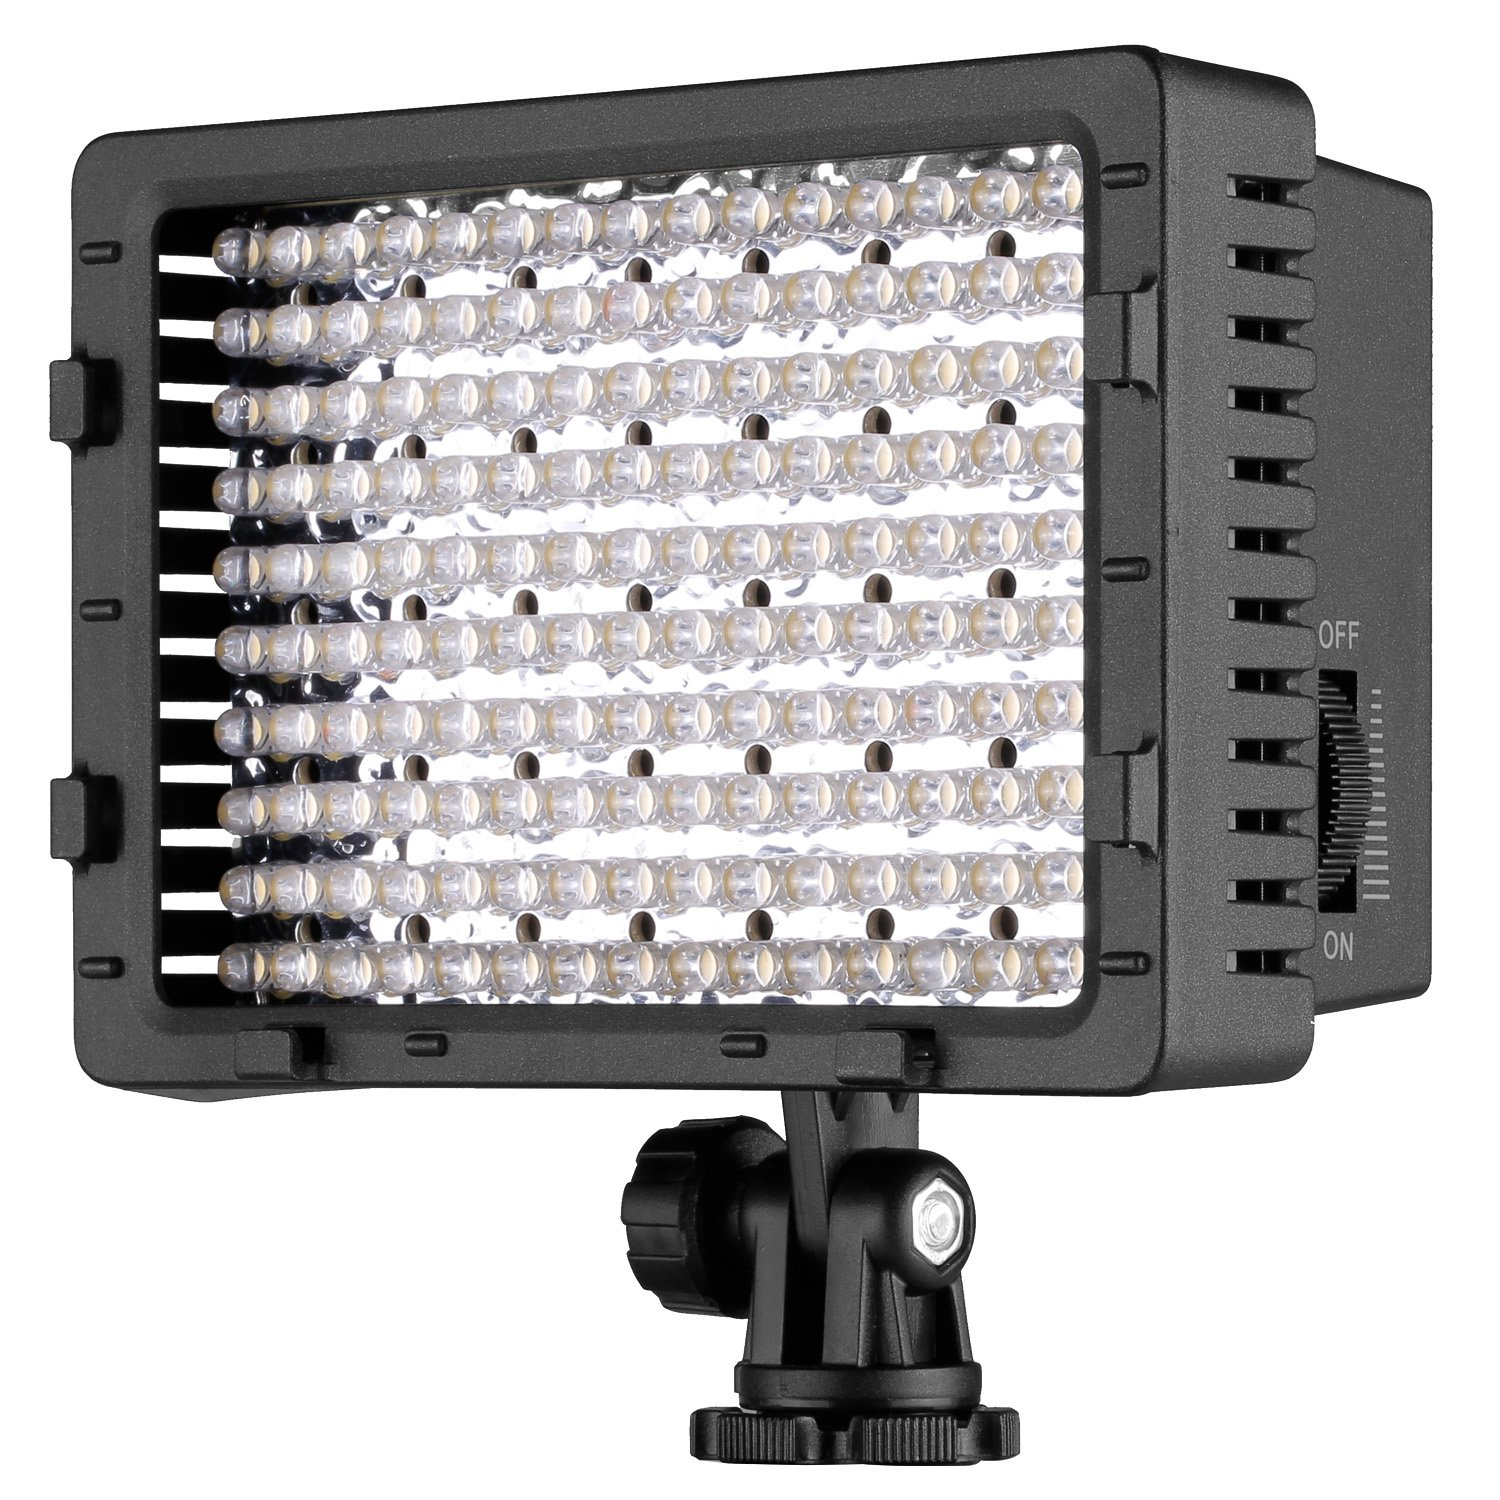 NEEWER CN-216 216PCS LED Dimmable Ultra High Power Panel Digital Camera / Camcorder Video Light, LED Light for Canon, Nikon, Pentax, Panasonic, SONY, Samsung and Olympus Digital SLR Cameras by Neewer